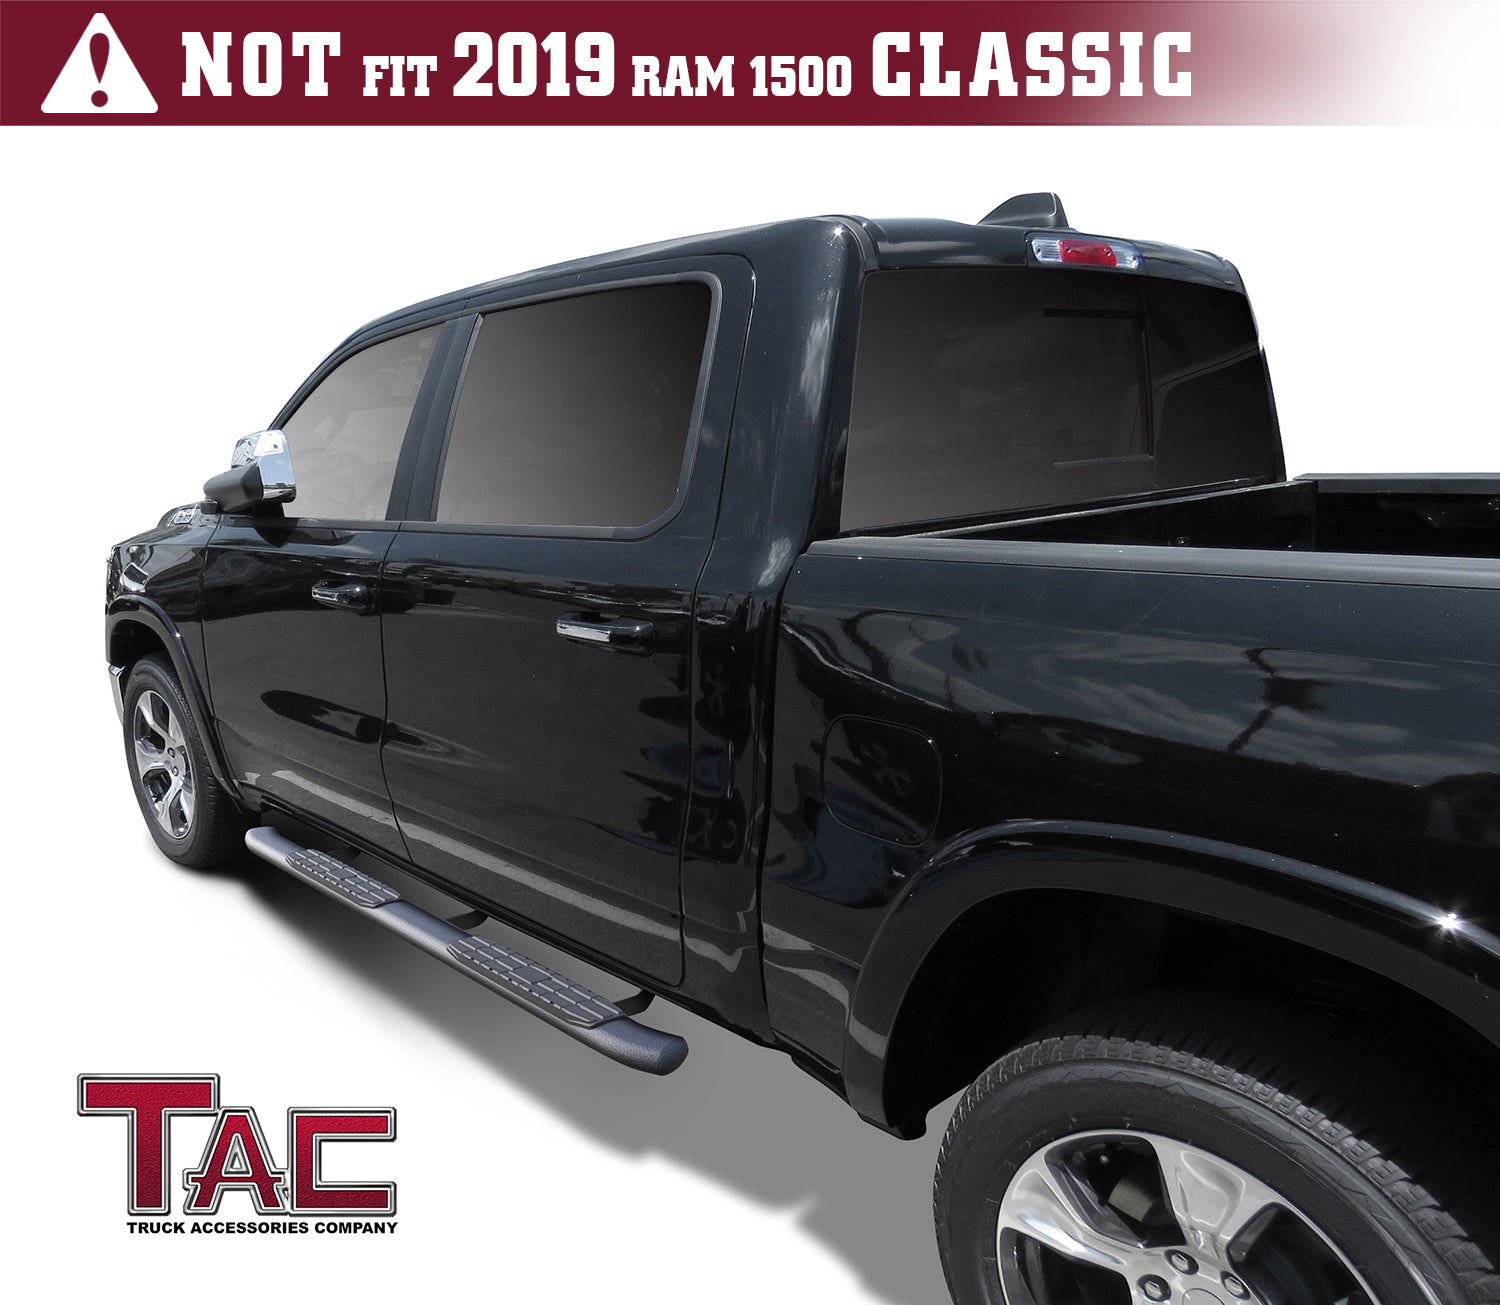 TAC Side Steps Running Boards Fit 2019 Dodge Ram 1500 Crew Cab 2 PCS Excl.2019 Ram 1500 Classic Truck Pickup 3 Stainless Steel Side Bars Nerf Bars Step Rails Off Road Accessories